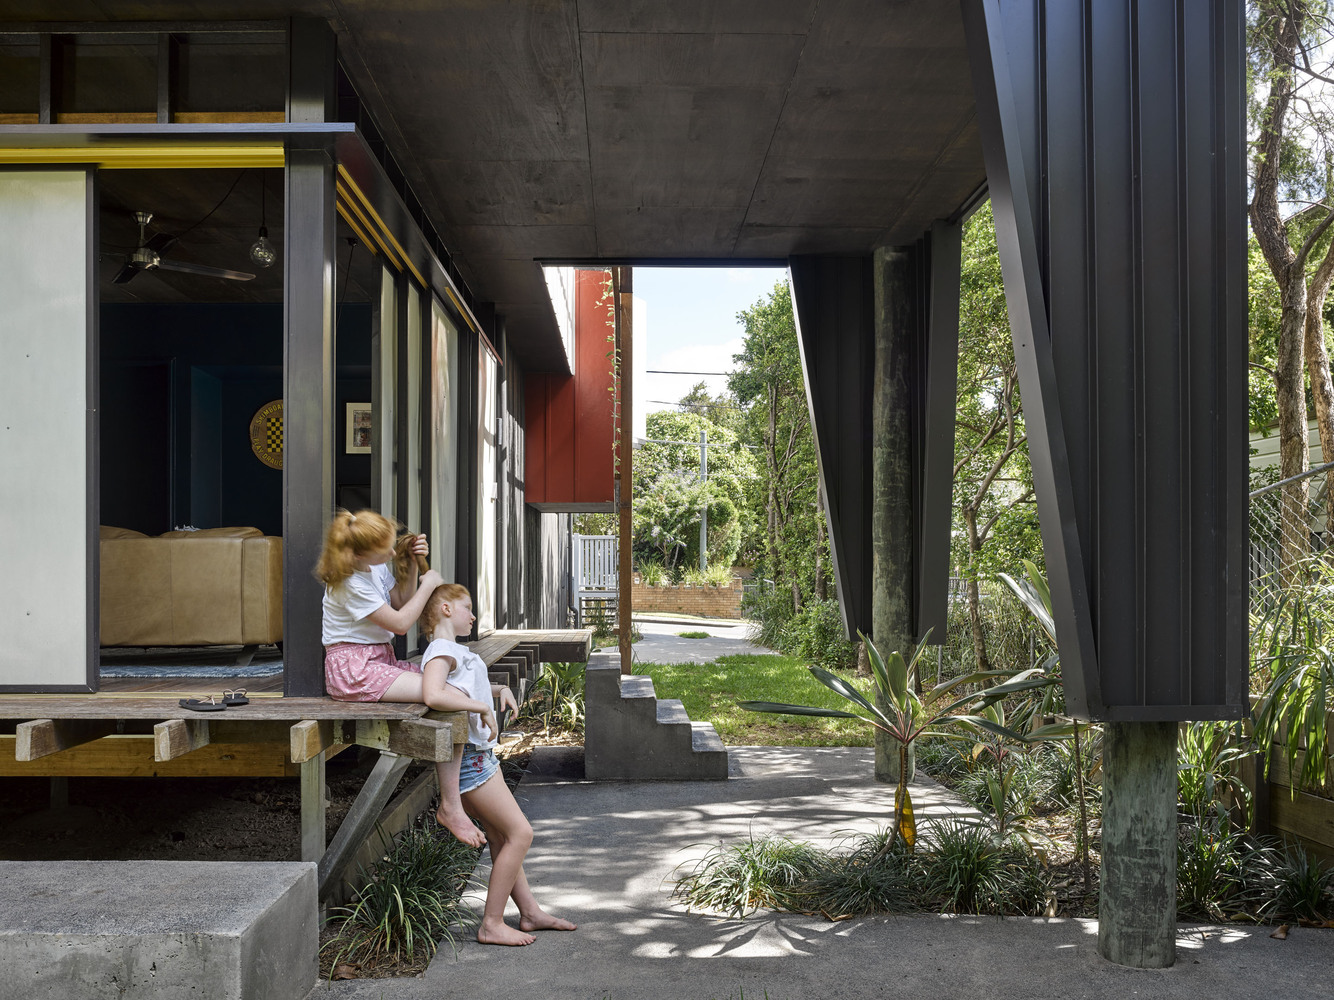 Harriet之家,翻修打造最具生活气息住宅丨Bligh Graham Architects